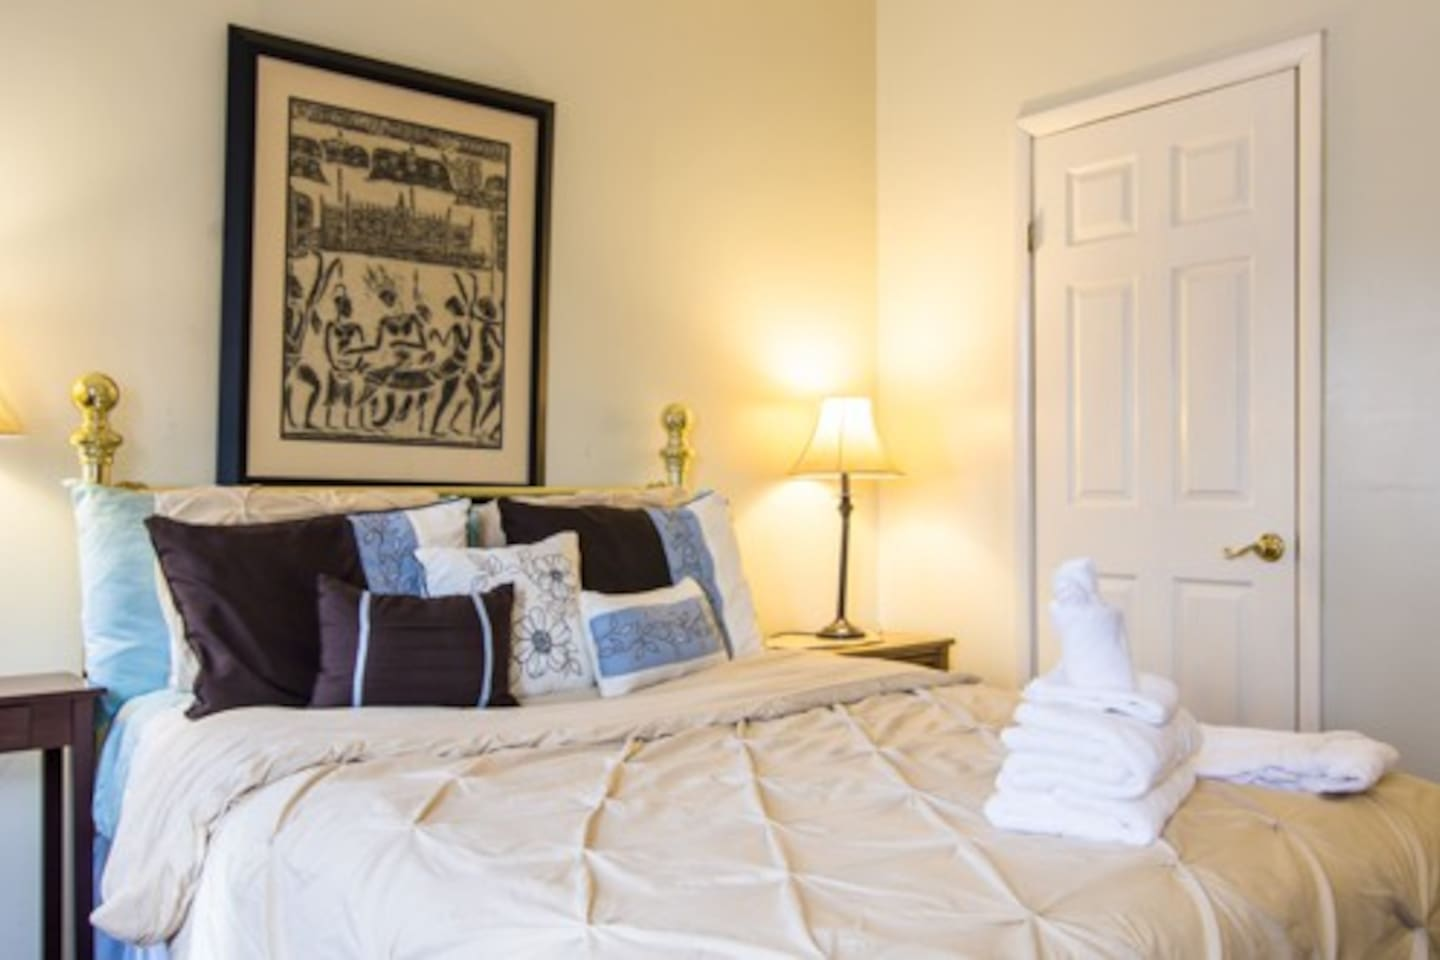 Cleveland Clinic Room # 6 - Houses for Rent in Cleveland, Ohio ...